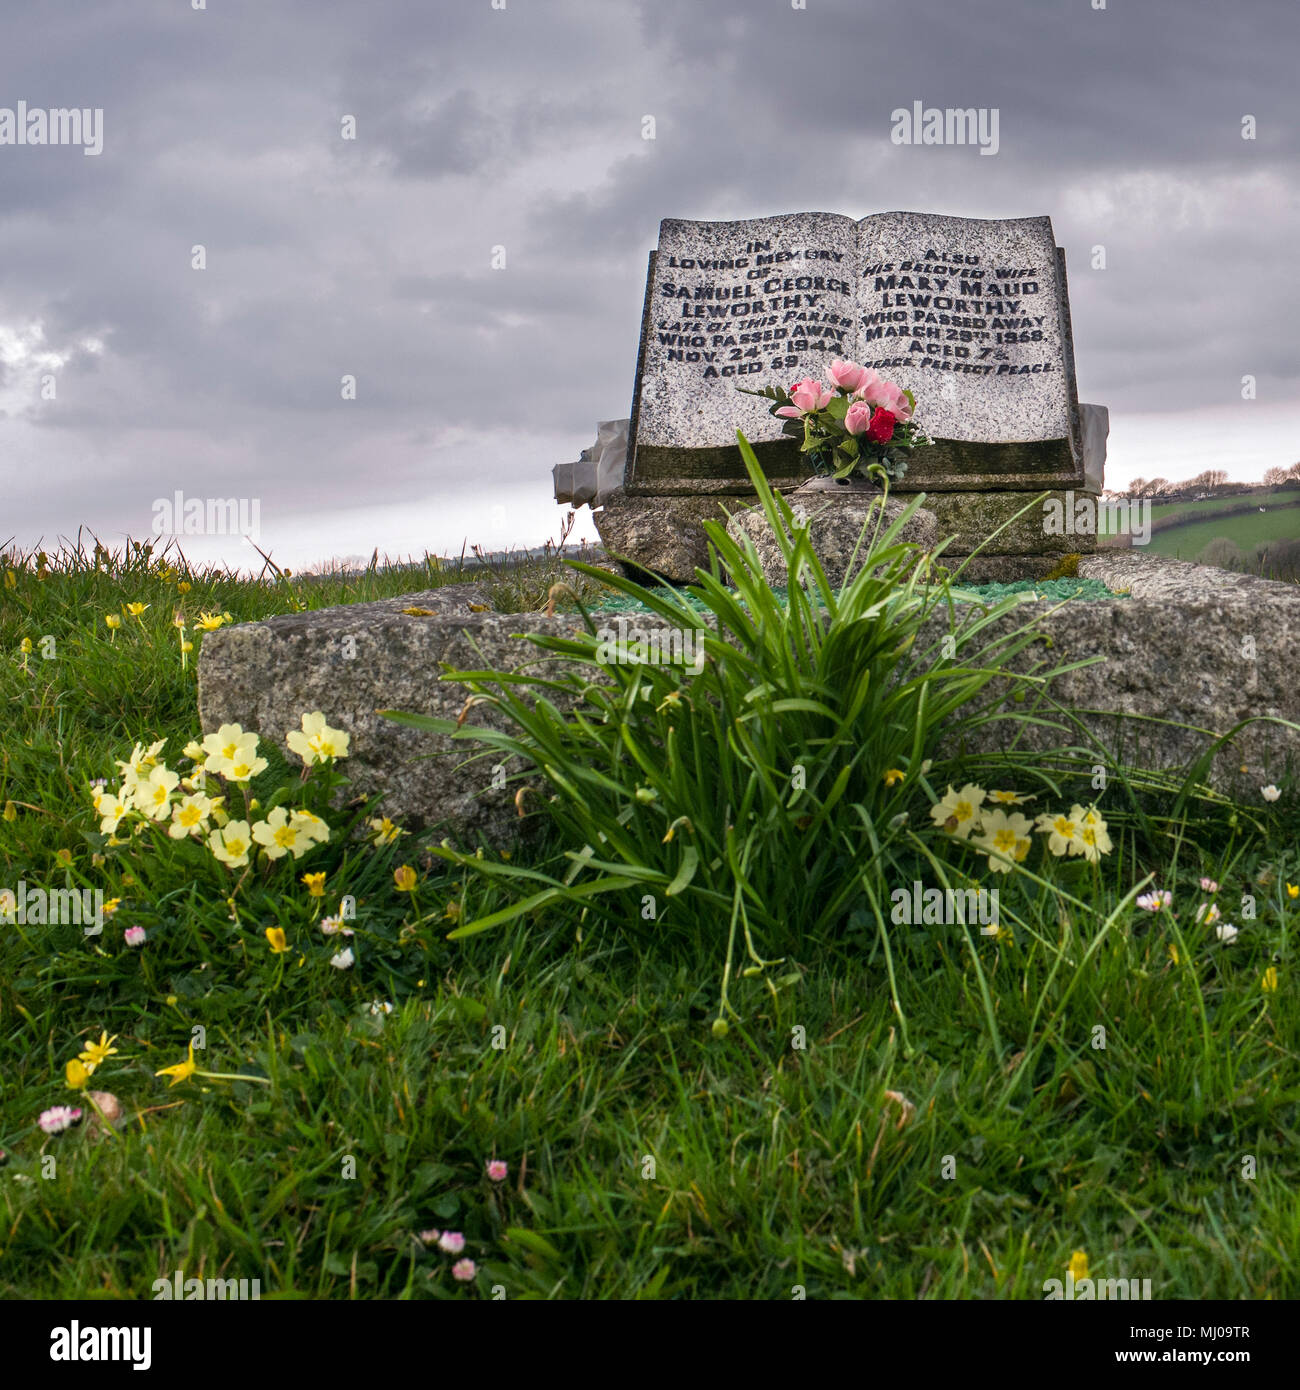 headstone in graveyard advent church civil parish on the north-western edge of Bodmin Moor in north Cornwall, England - Stock Image